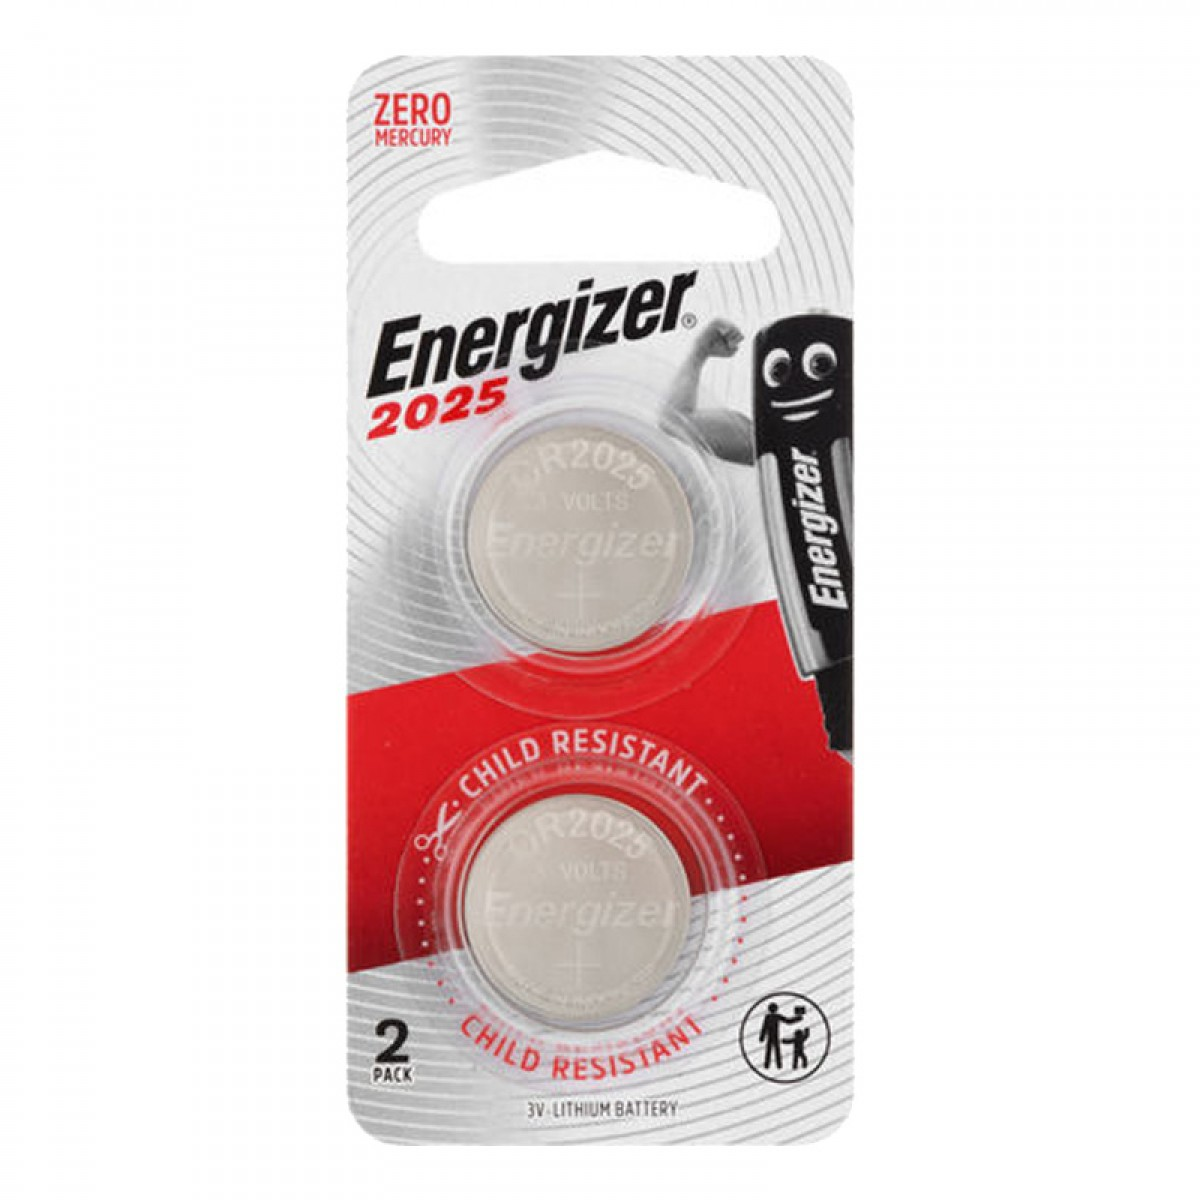 Energizer CR2025 x2 Button Cell Coin 3V Lithium Battery